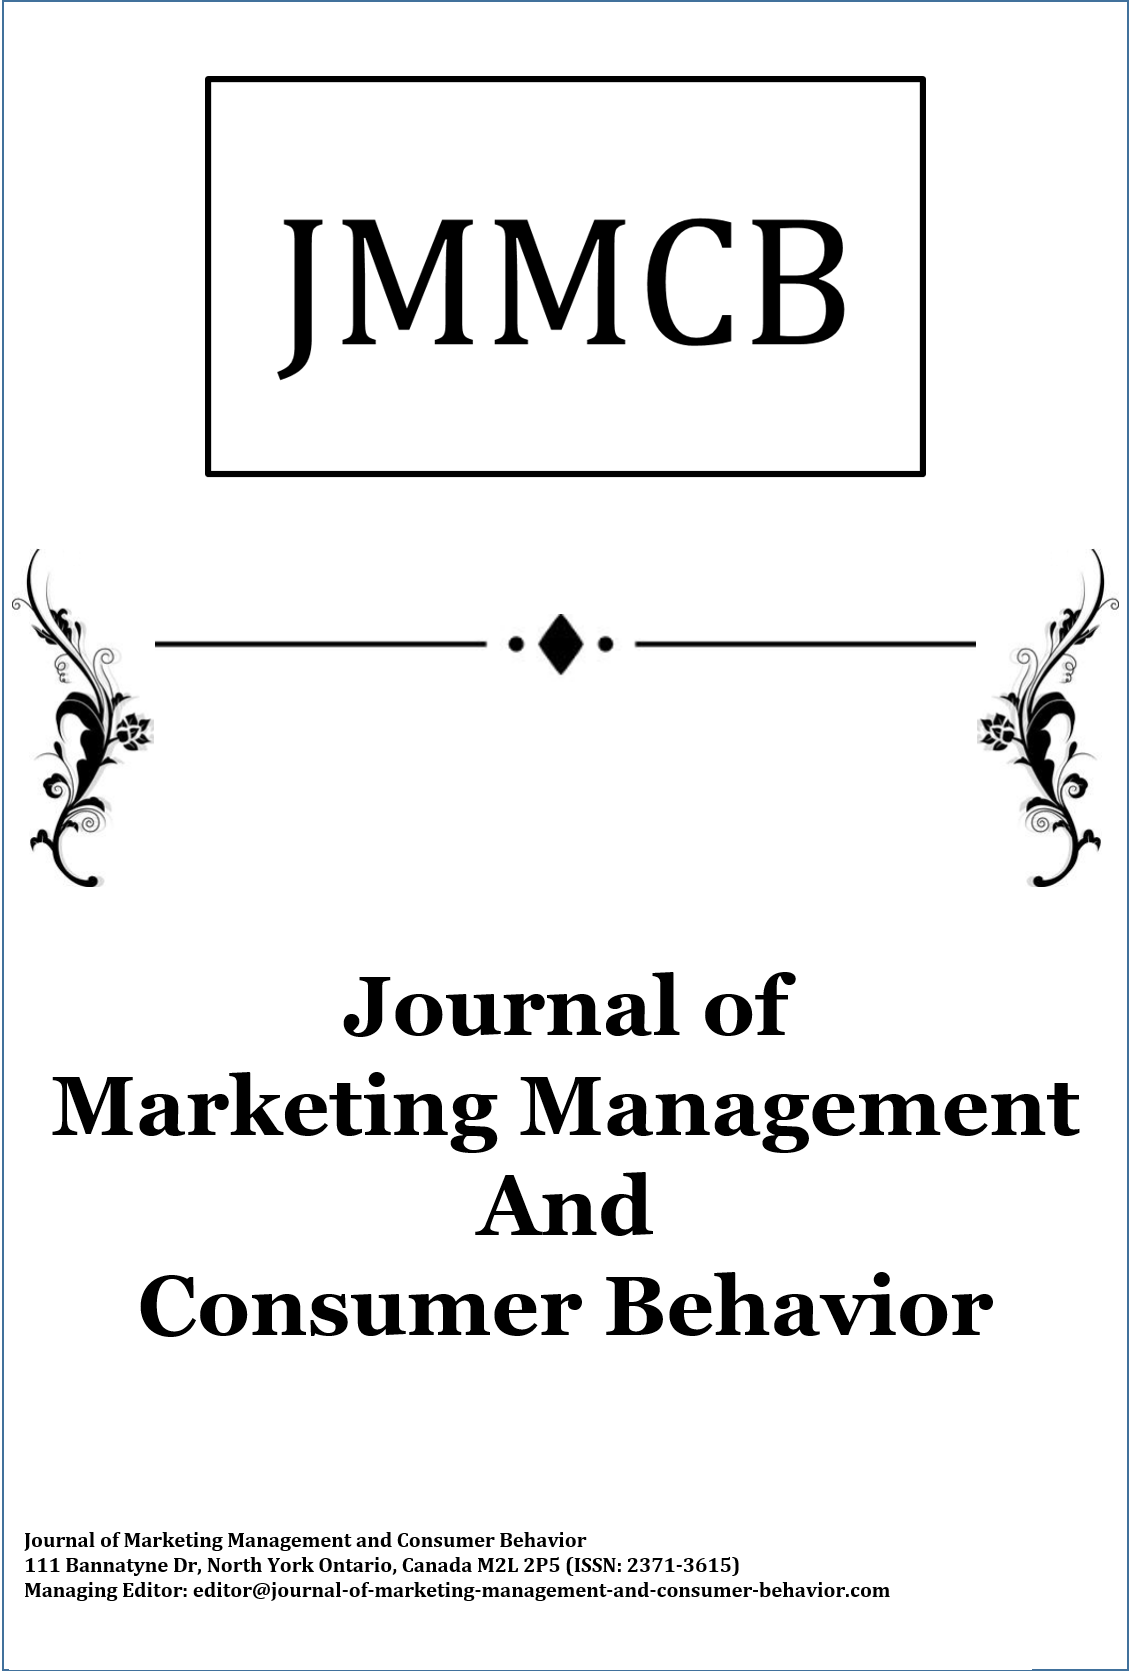 Journal of Marketing Management and Consumer Behavior